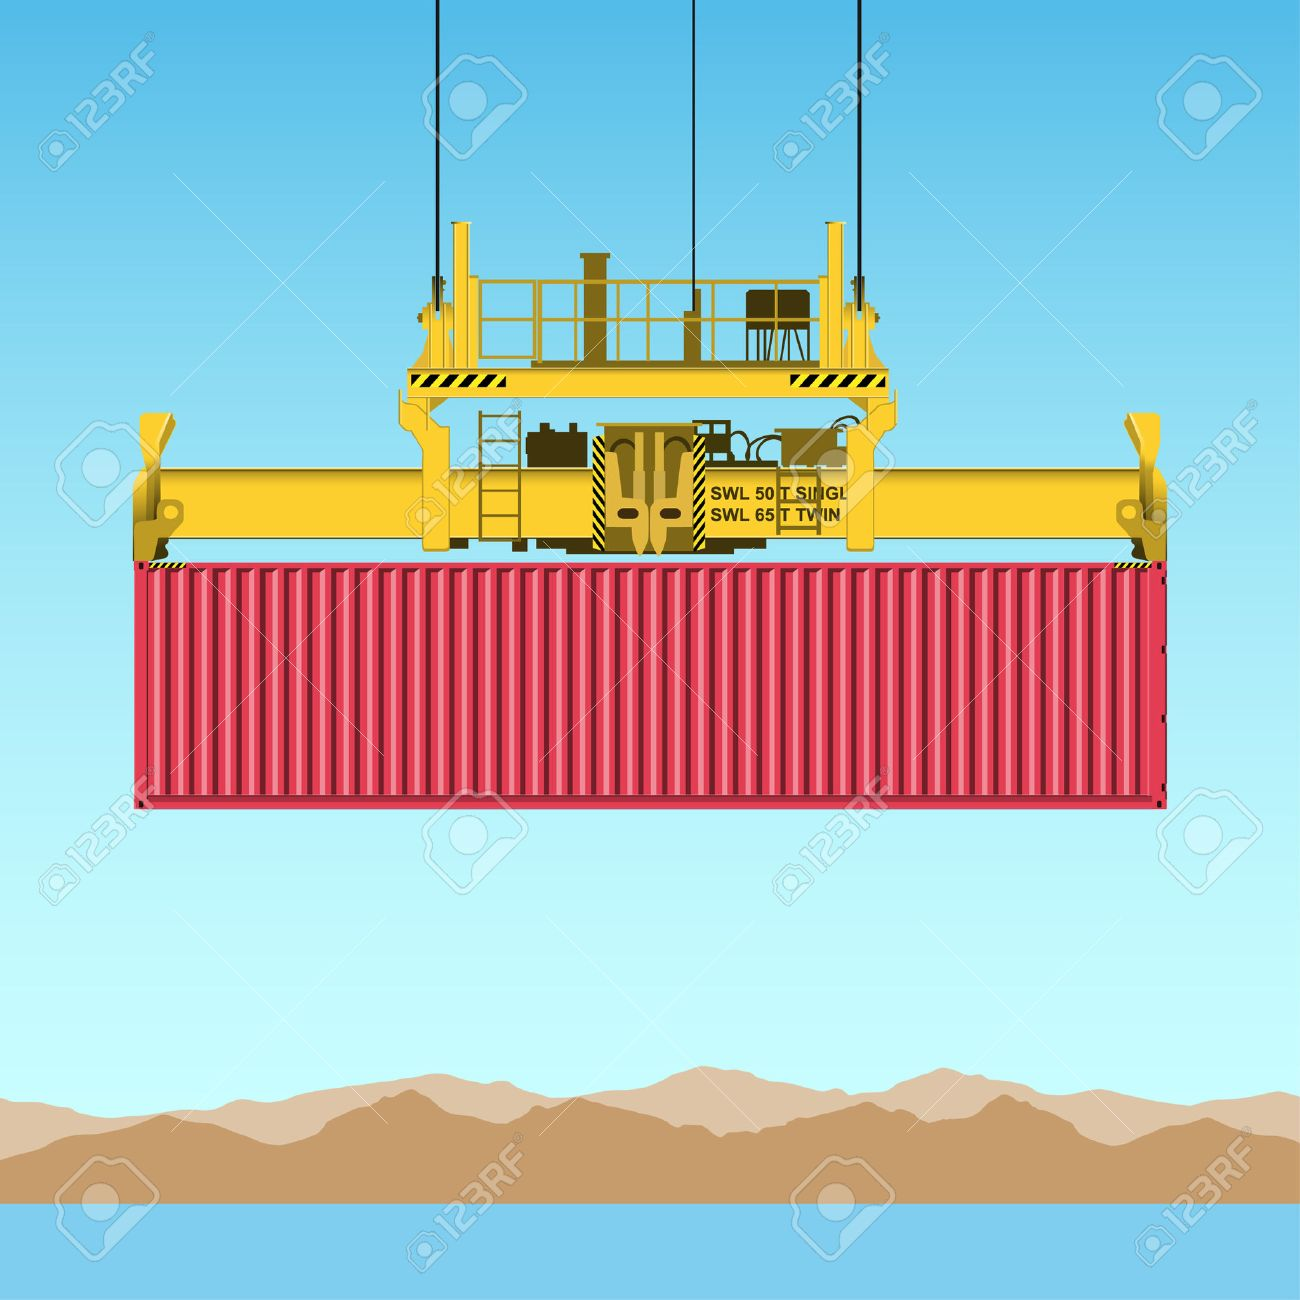 A Freight Containers on Crane at the Docks Stock Vector - 7458105